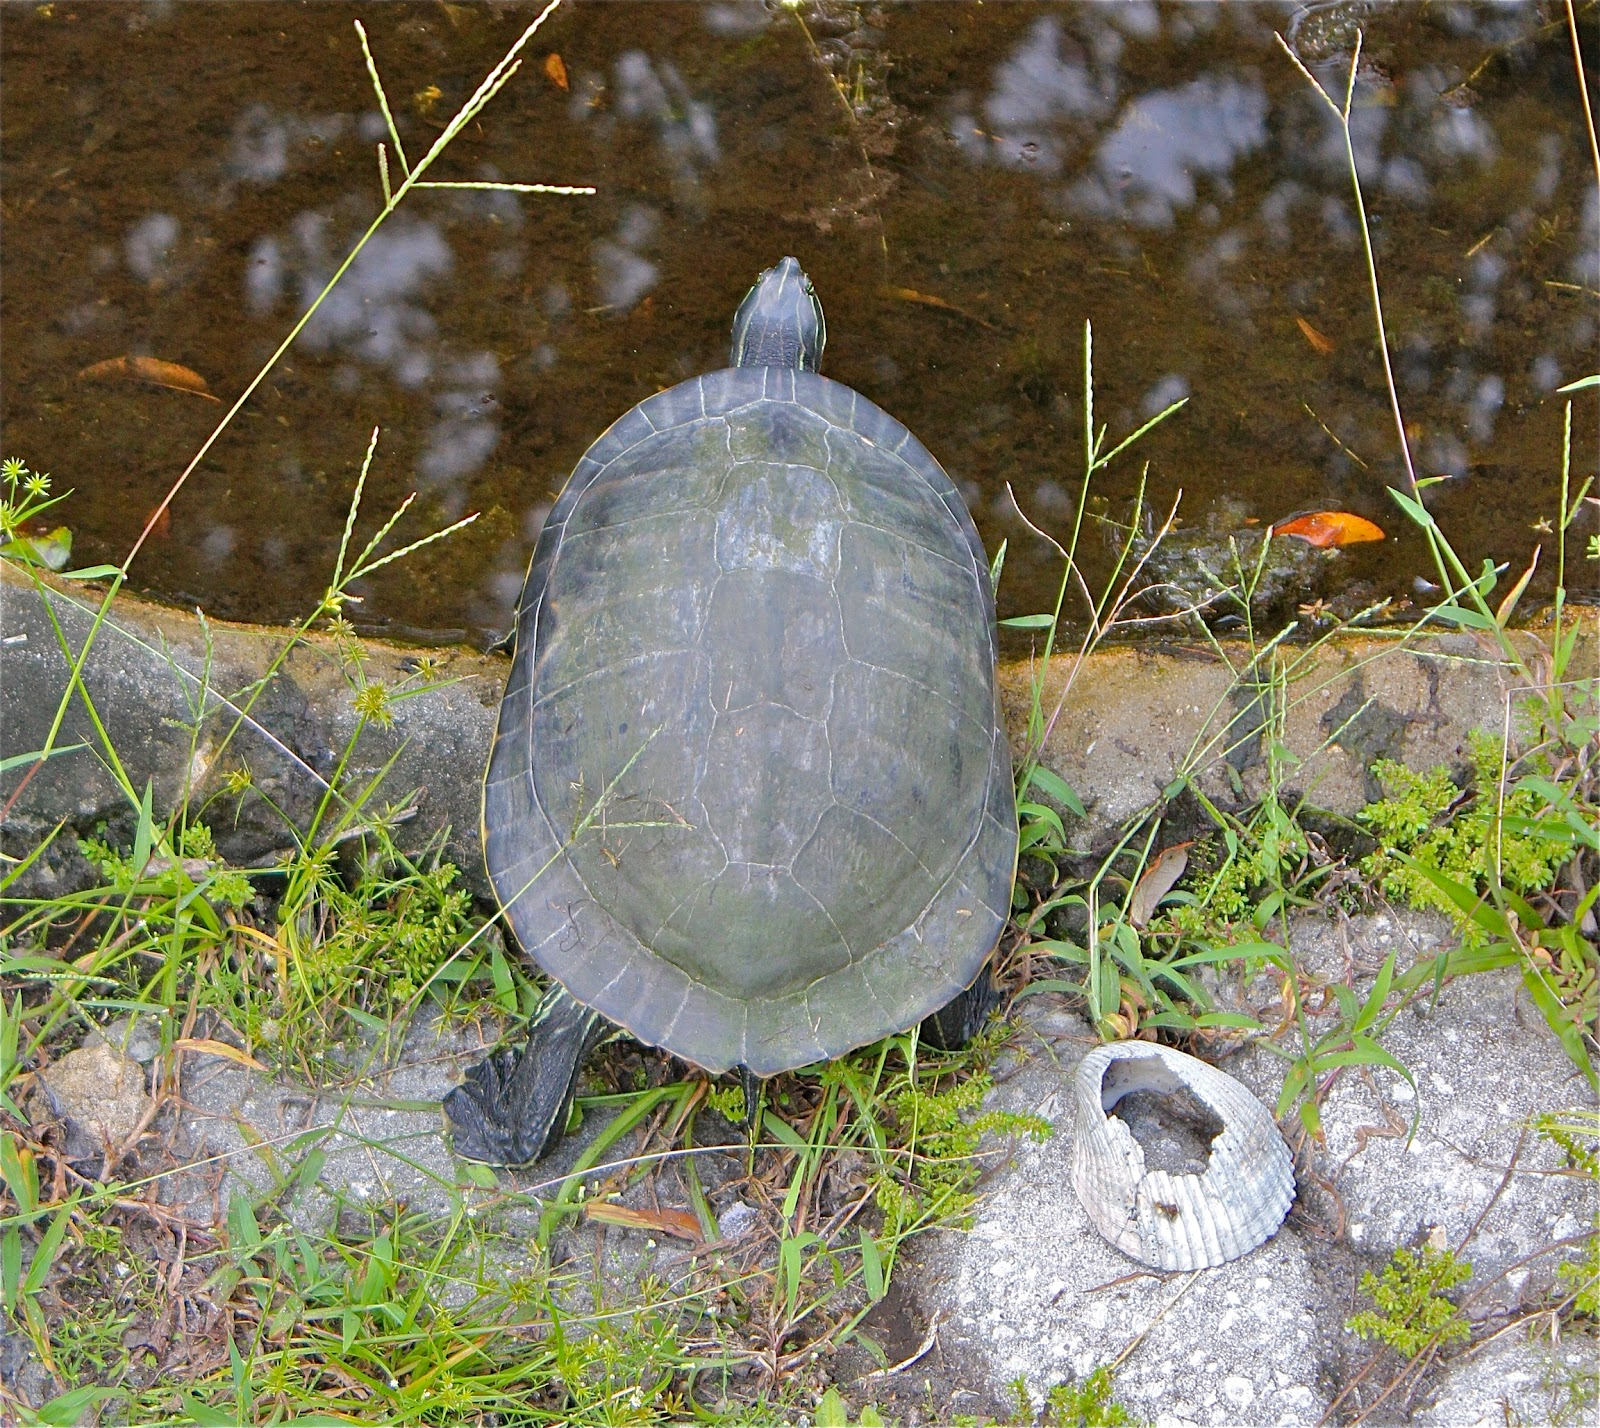 ... is the perfect safe, camouflaged habitat for semi-aquatic turtles